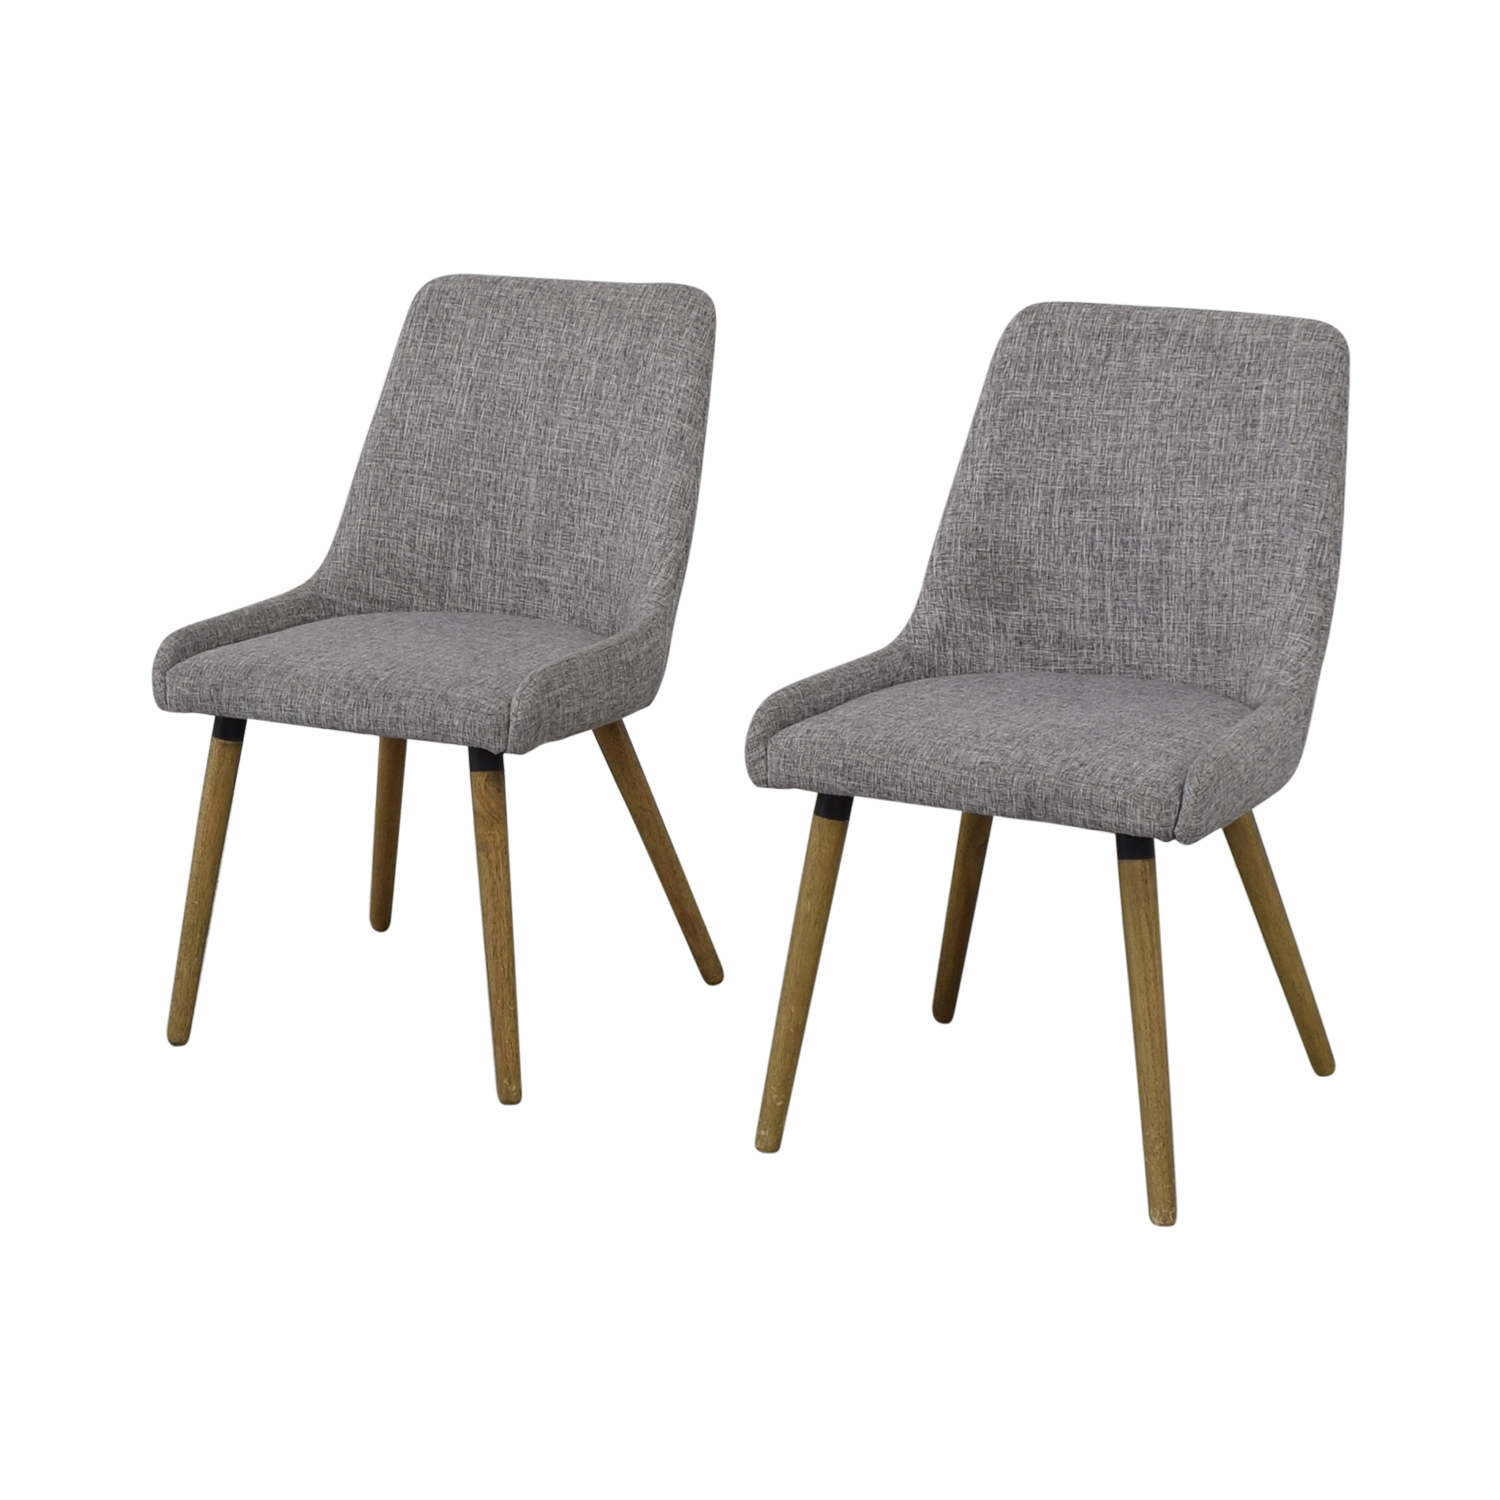 West Elm West Elm Mid-Century Upholstered Dining Chairs used